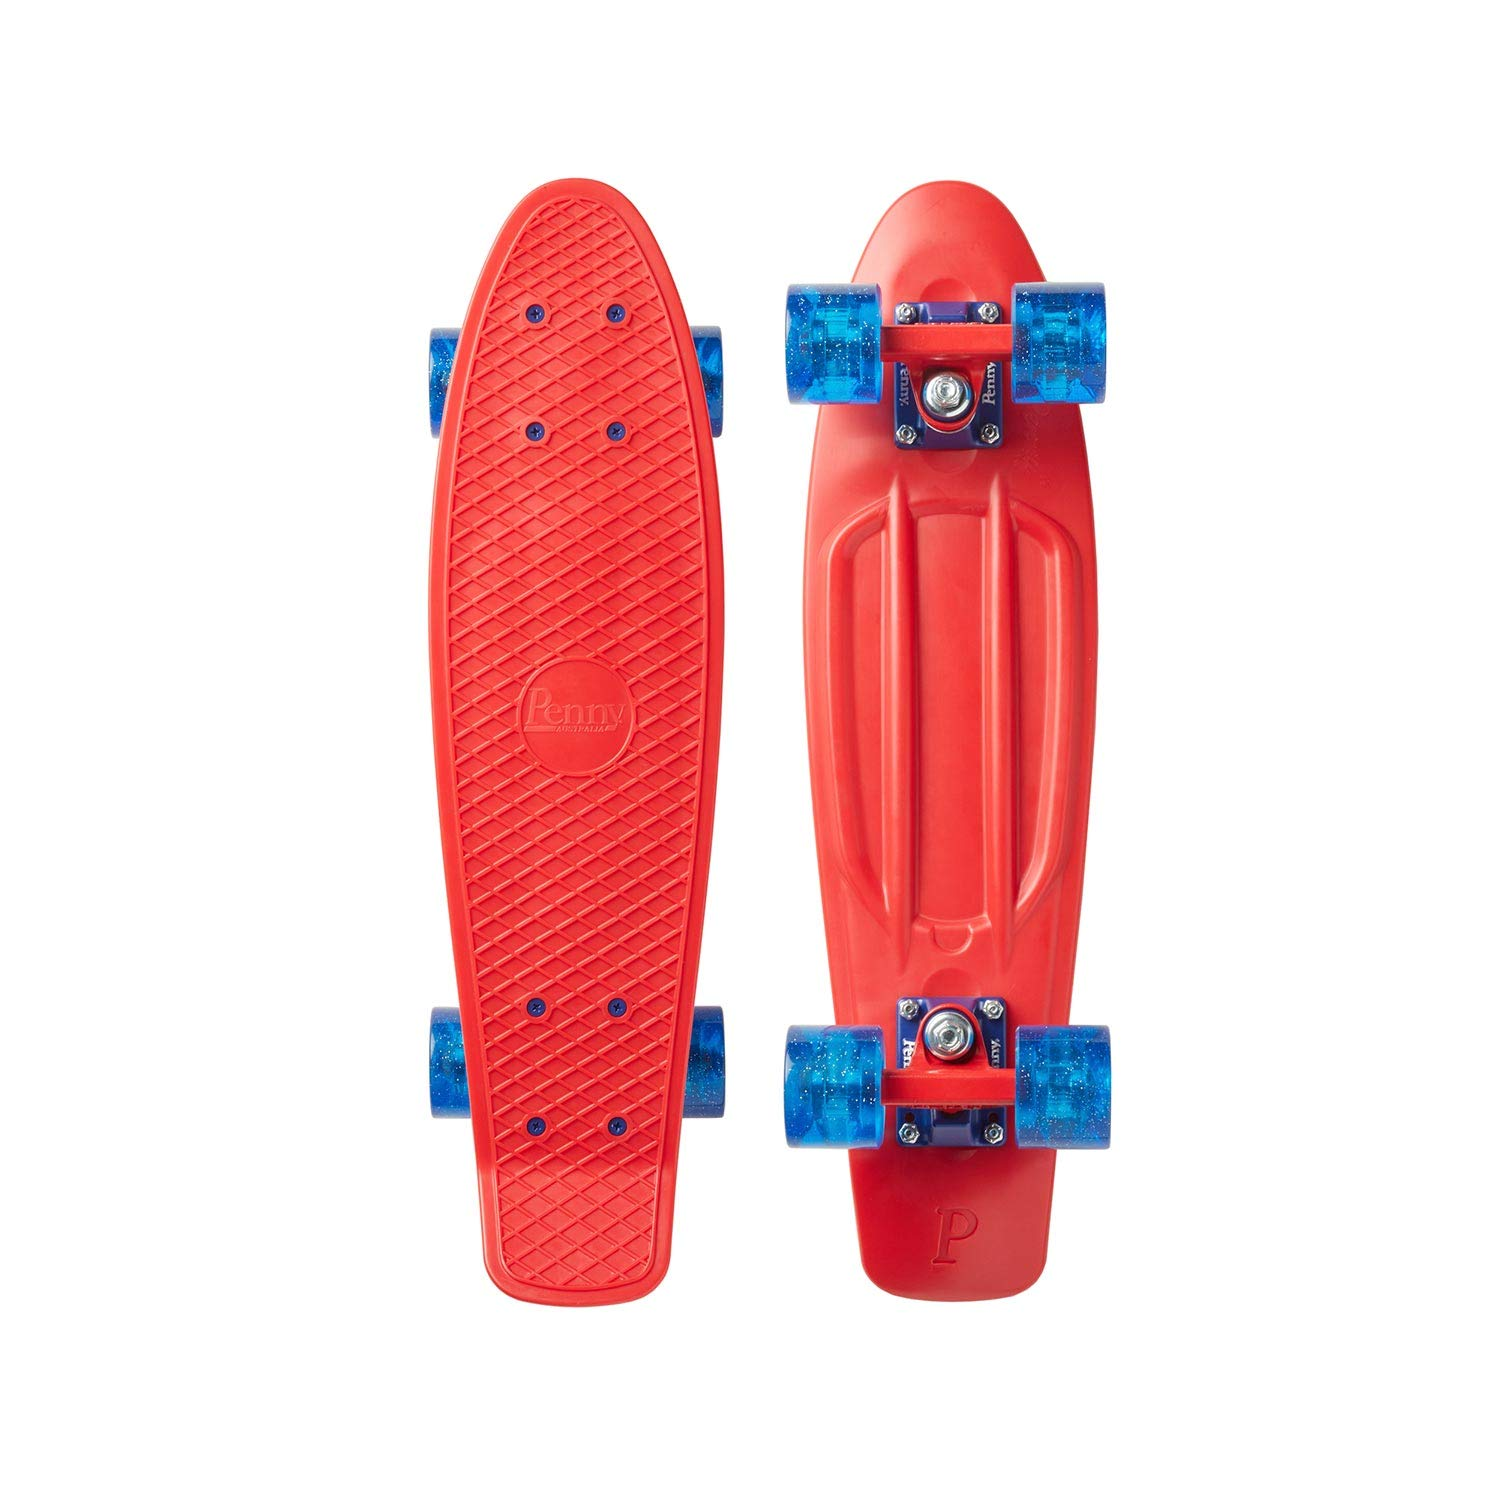 Penny Australia Complete Skateboard (Red Comet, 22'') by Penny Australia (Image #1)